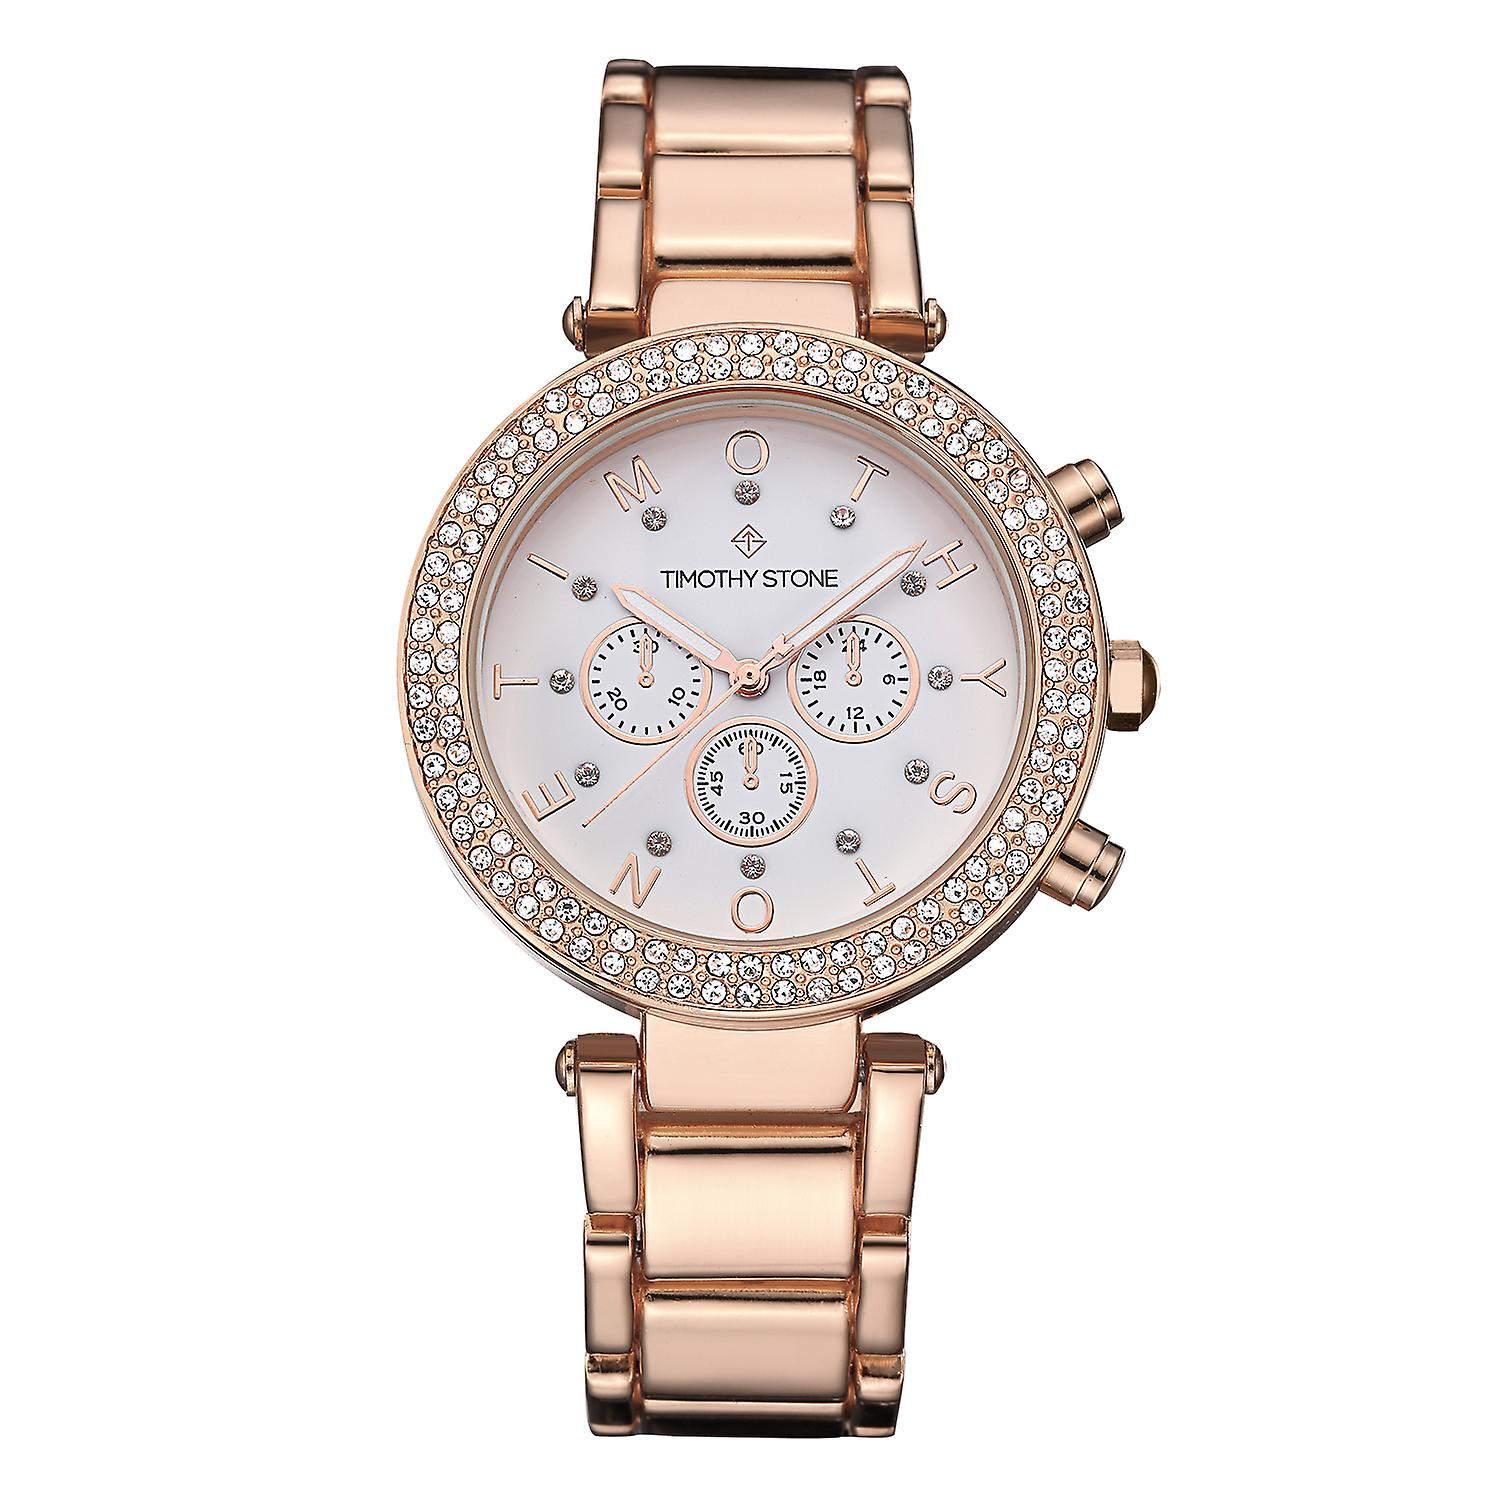 Timothy Stone Women's D�SIRE-STAINLESS Rose Gold-Tone Watch